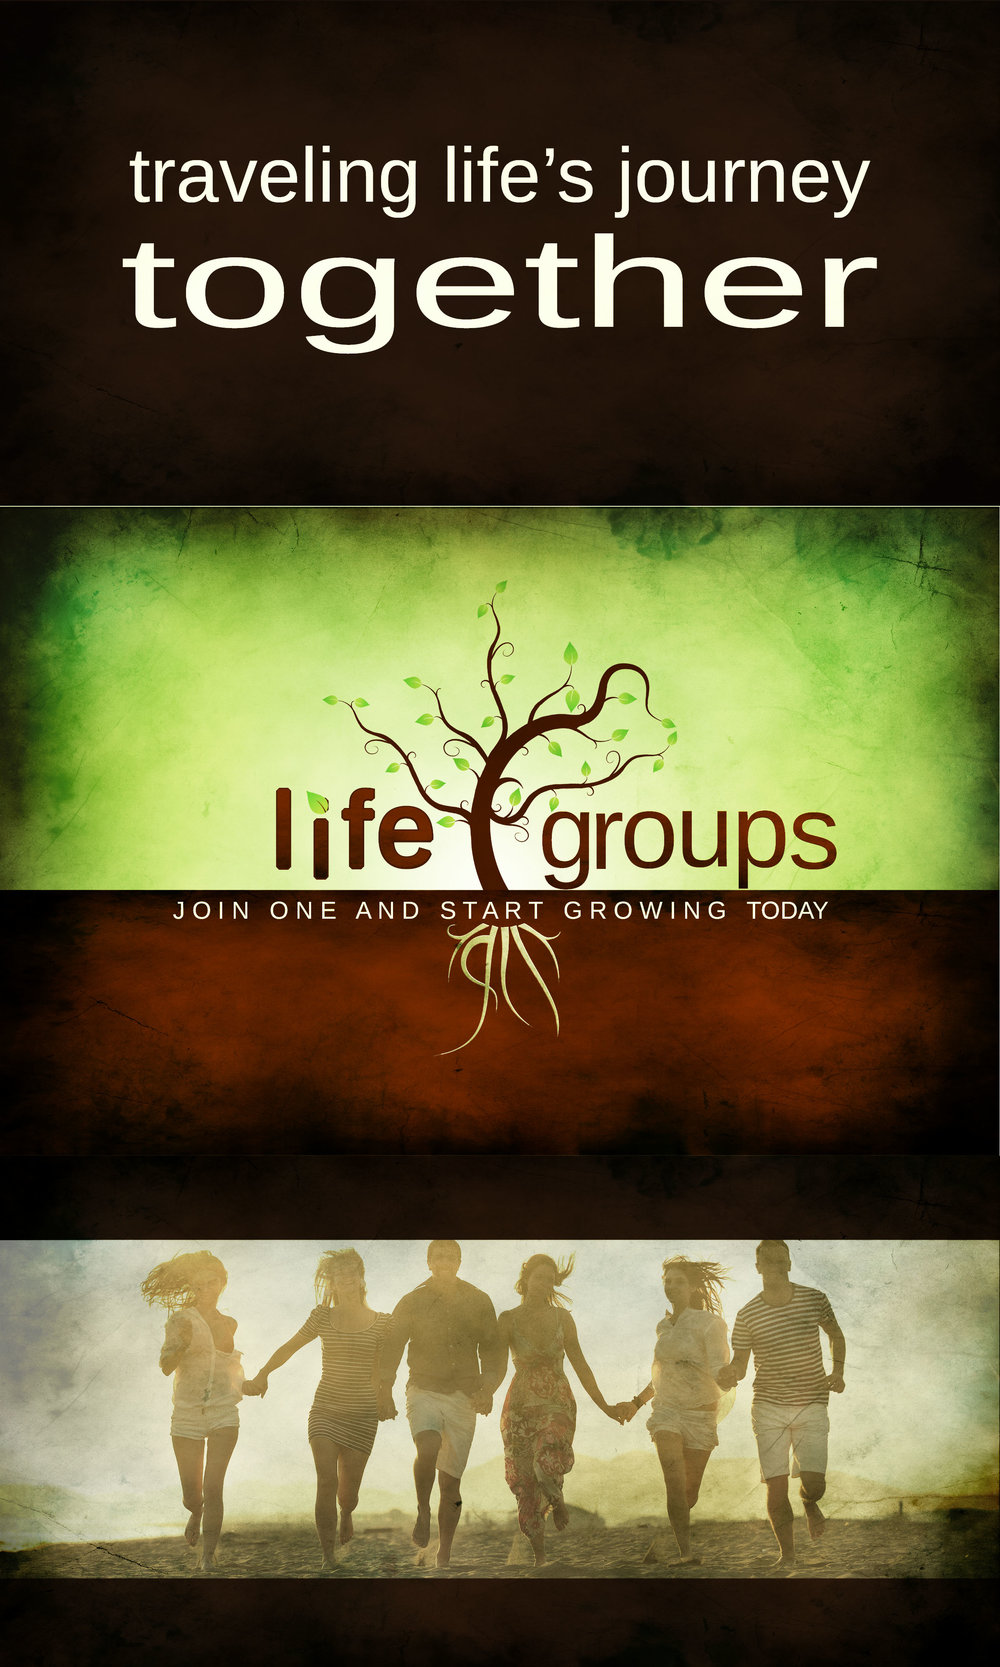 life groups banner small.jpg